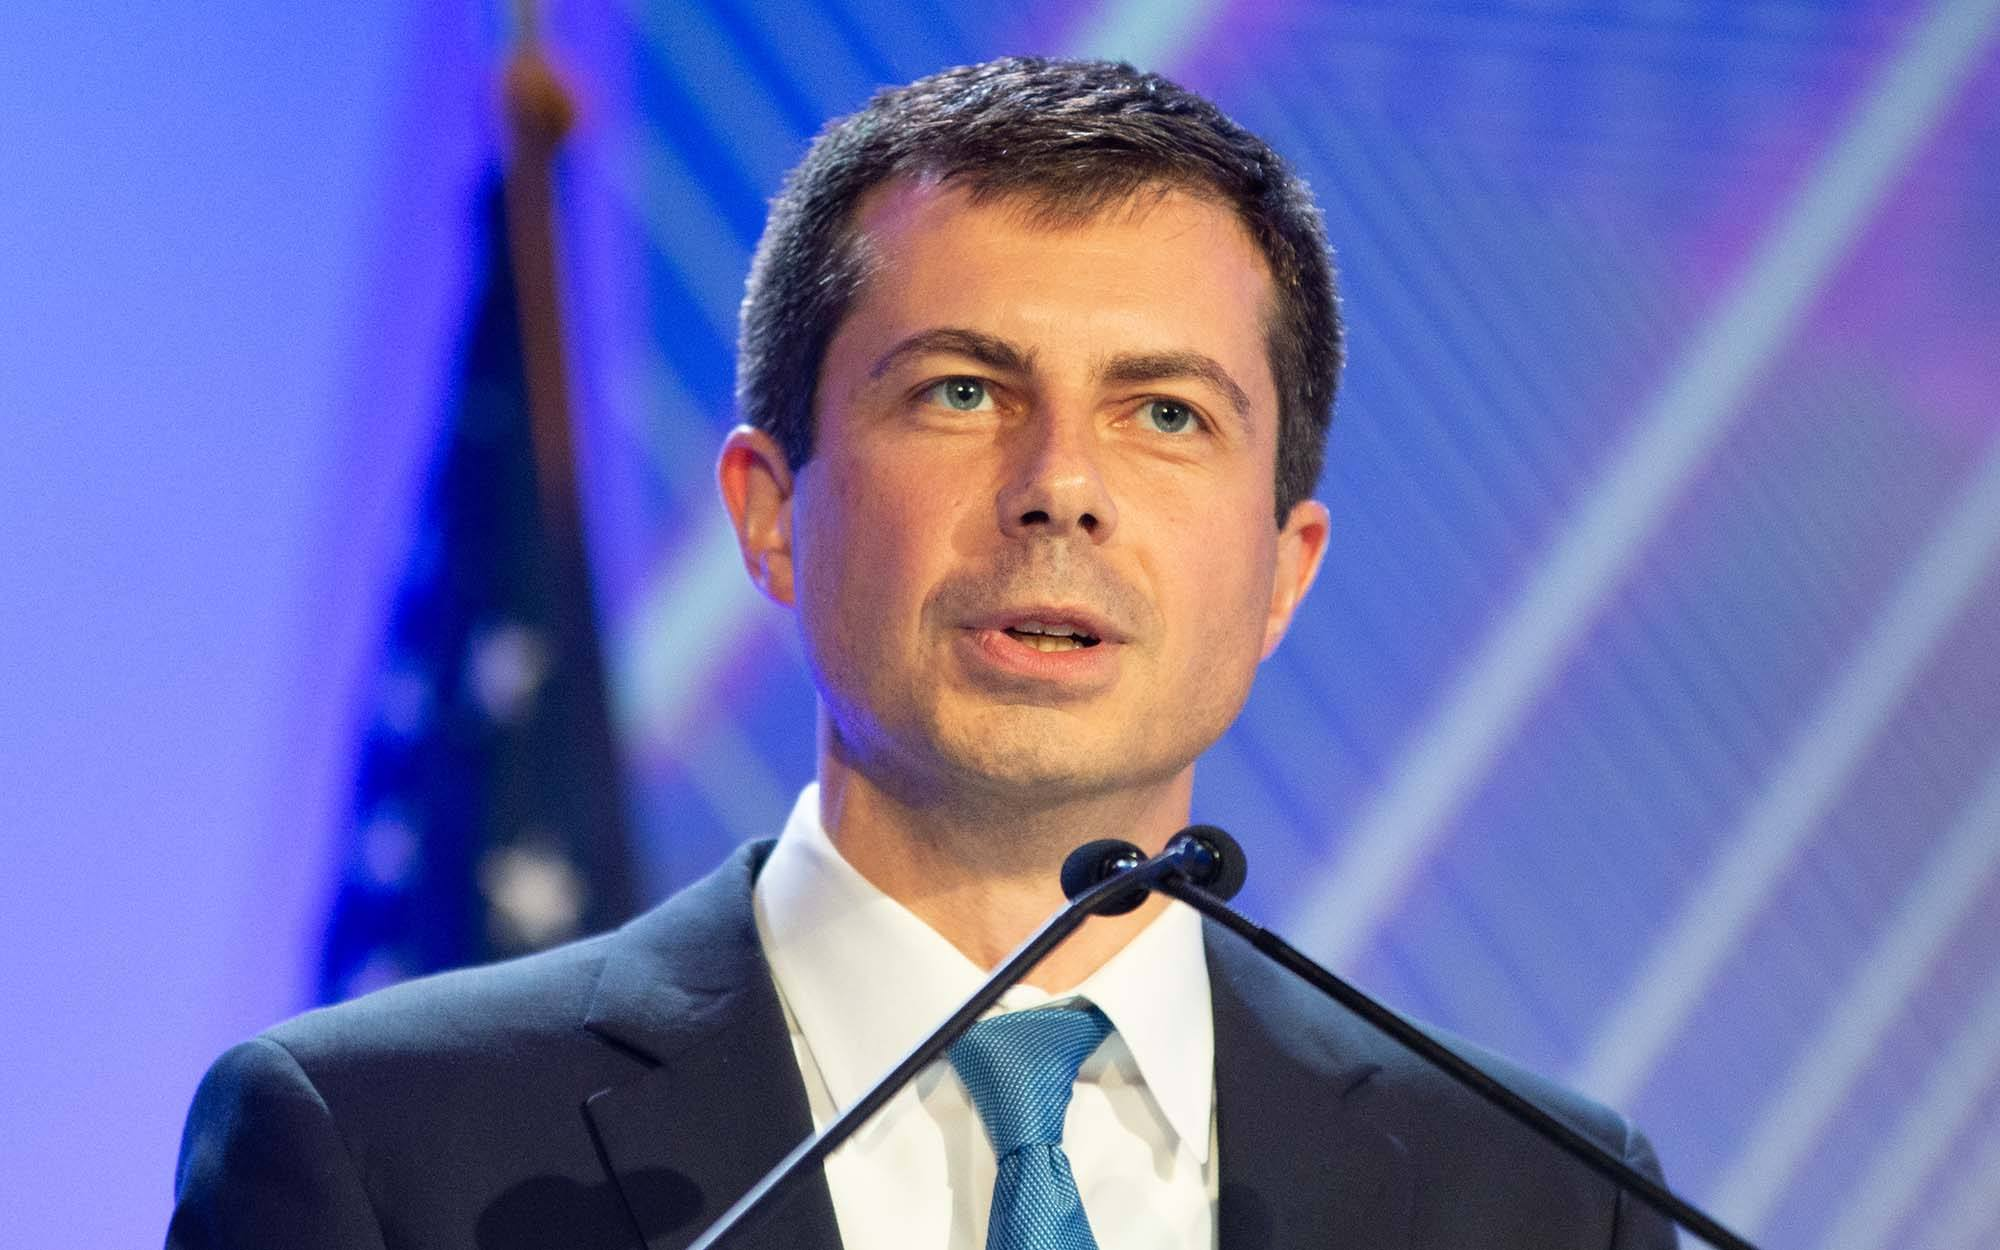 Buttigieg wants to grow population of U.S. towns by flooding them with immigrants